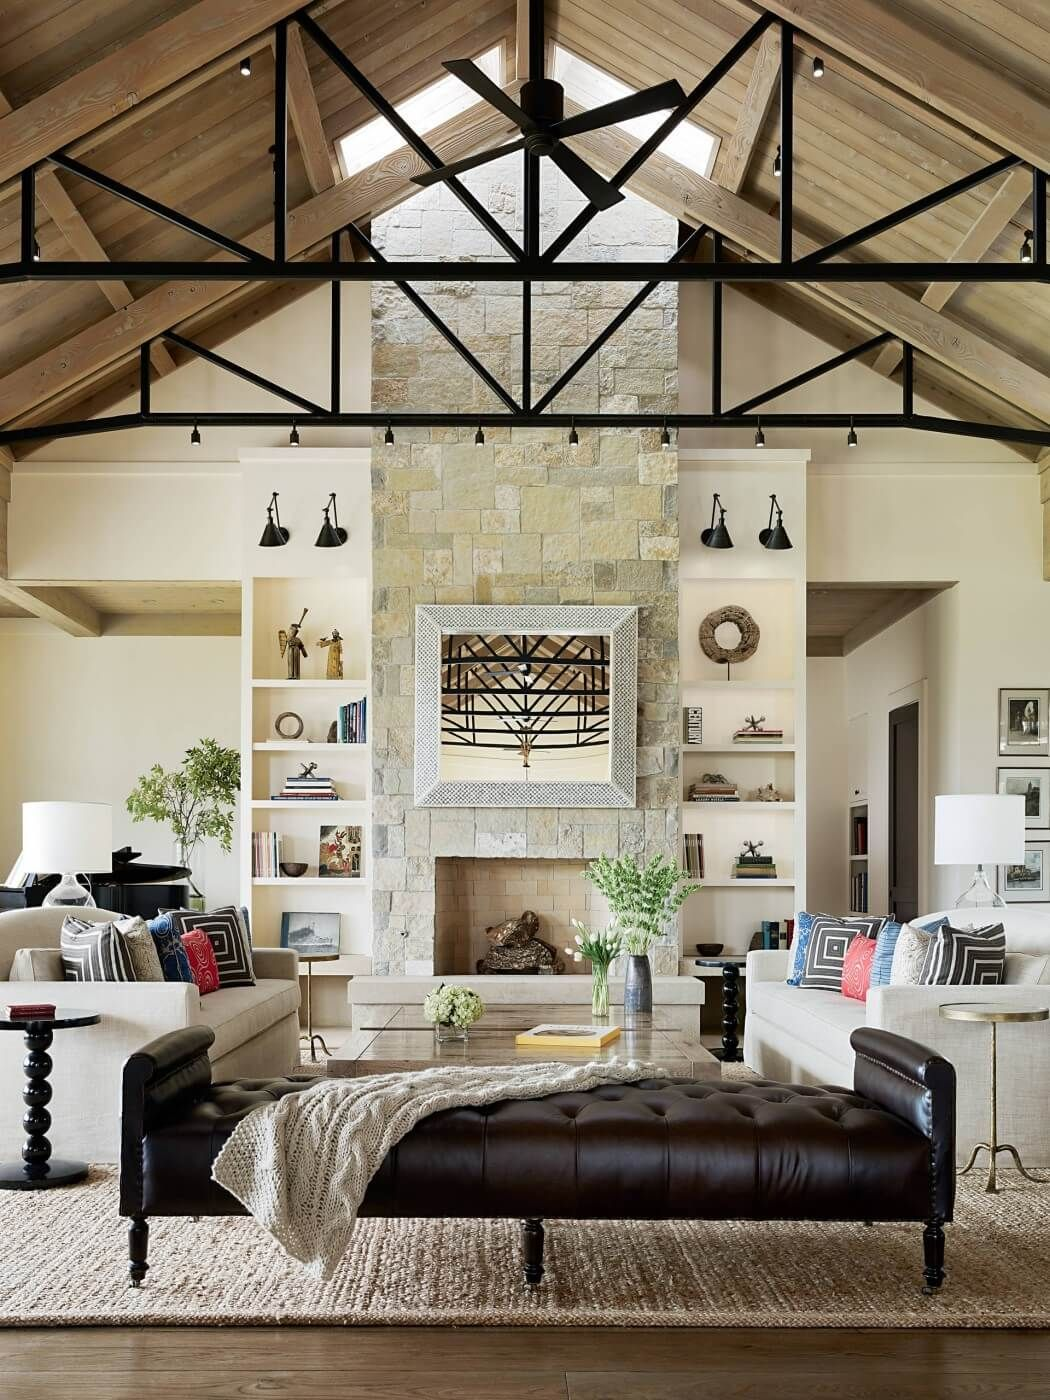 Contemporary Ceiling Designs For Living Room: Located In Santa Rosa, California